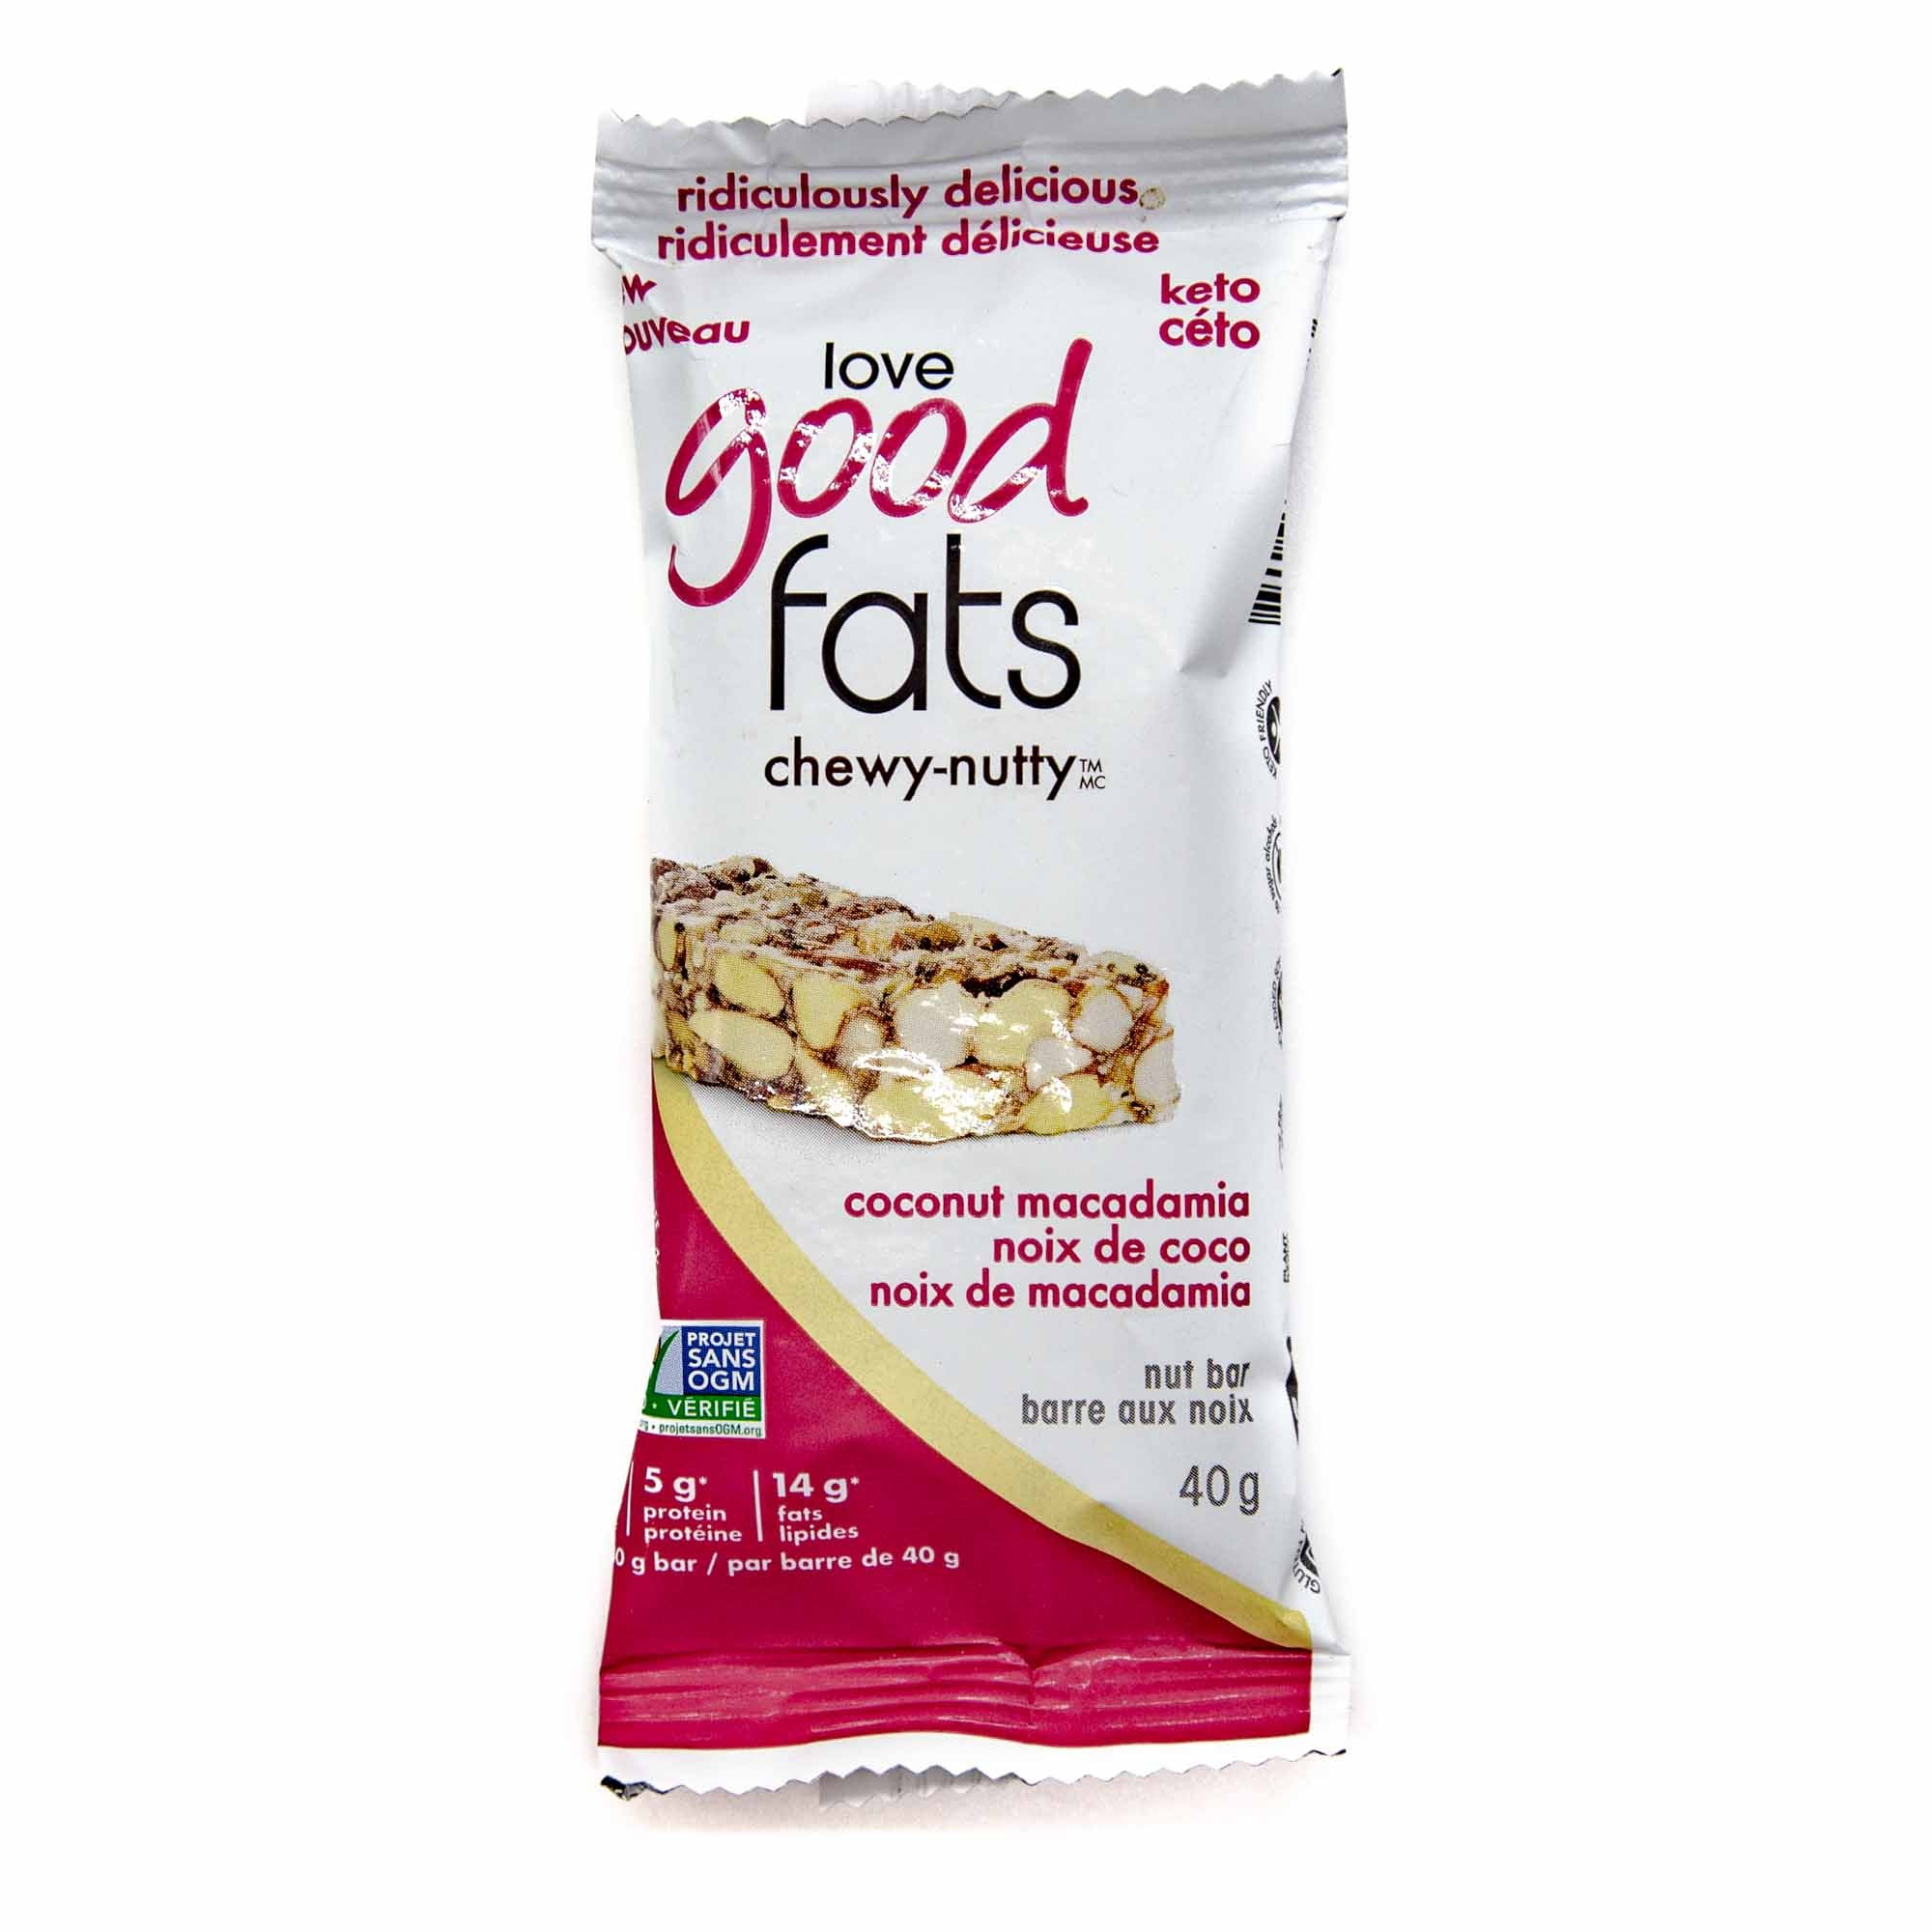 Love Good Fats - Chewy Nutty Coconut Macadamia - Mortise And Tenon